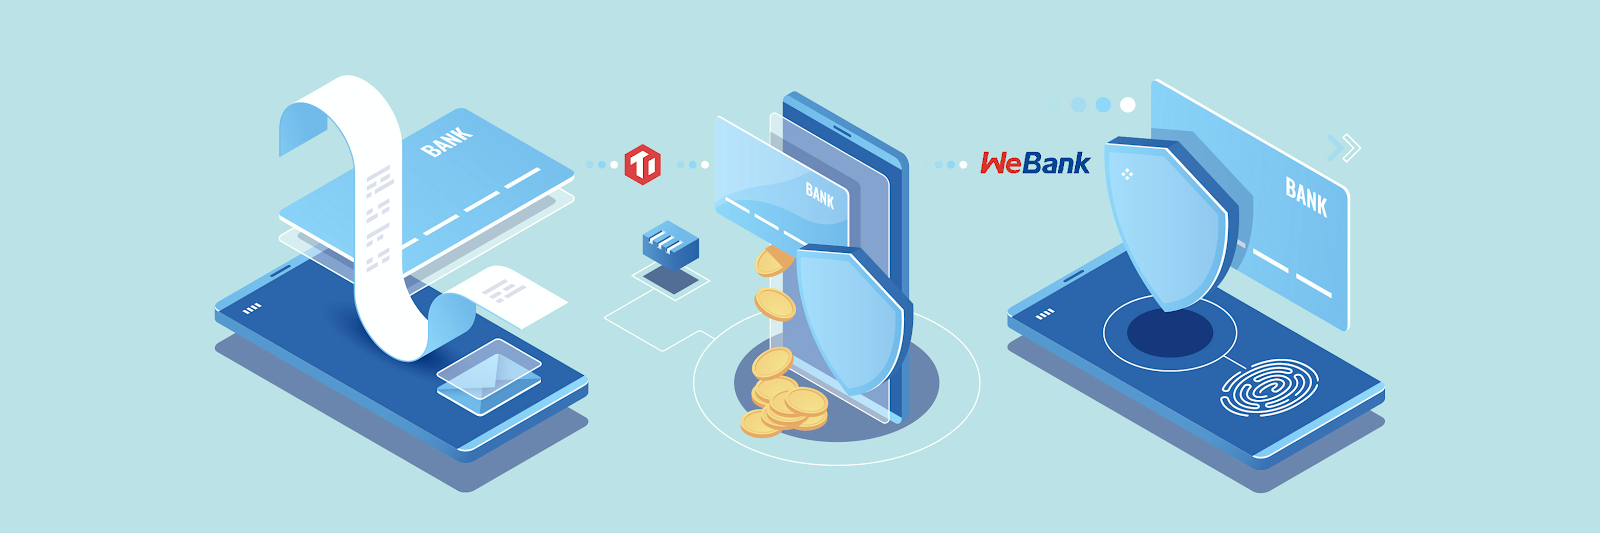 TiDB as MySQL alternative database helps WeBank achieve horizontal scaling